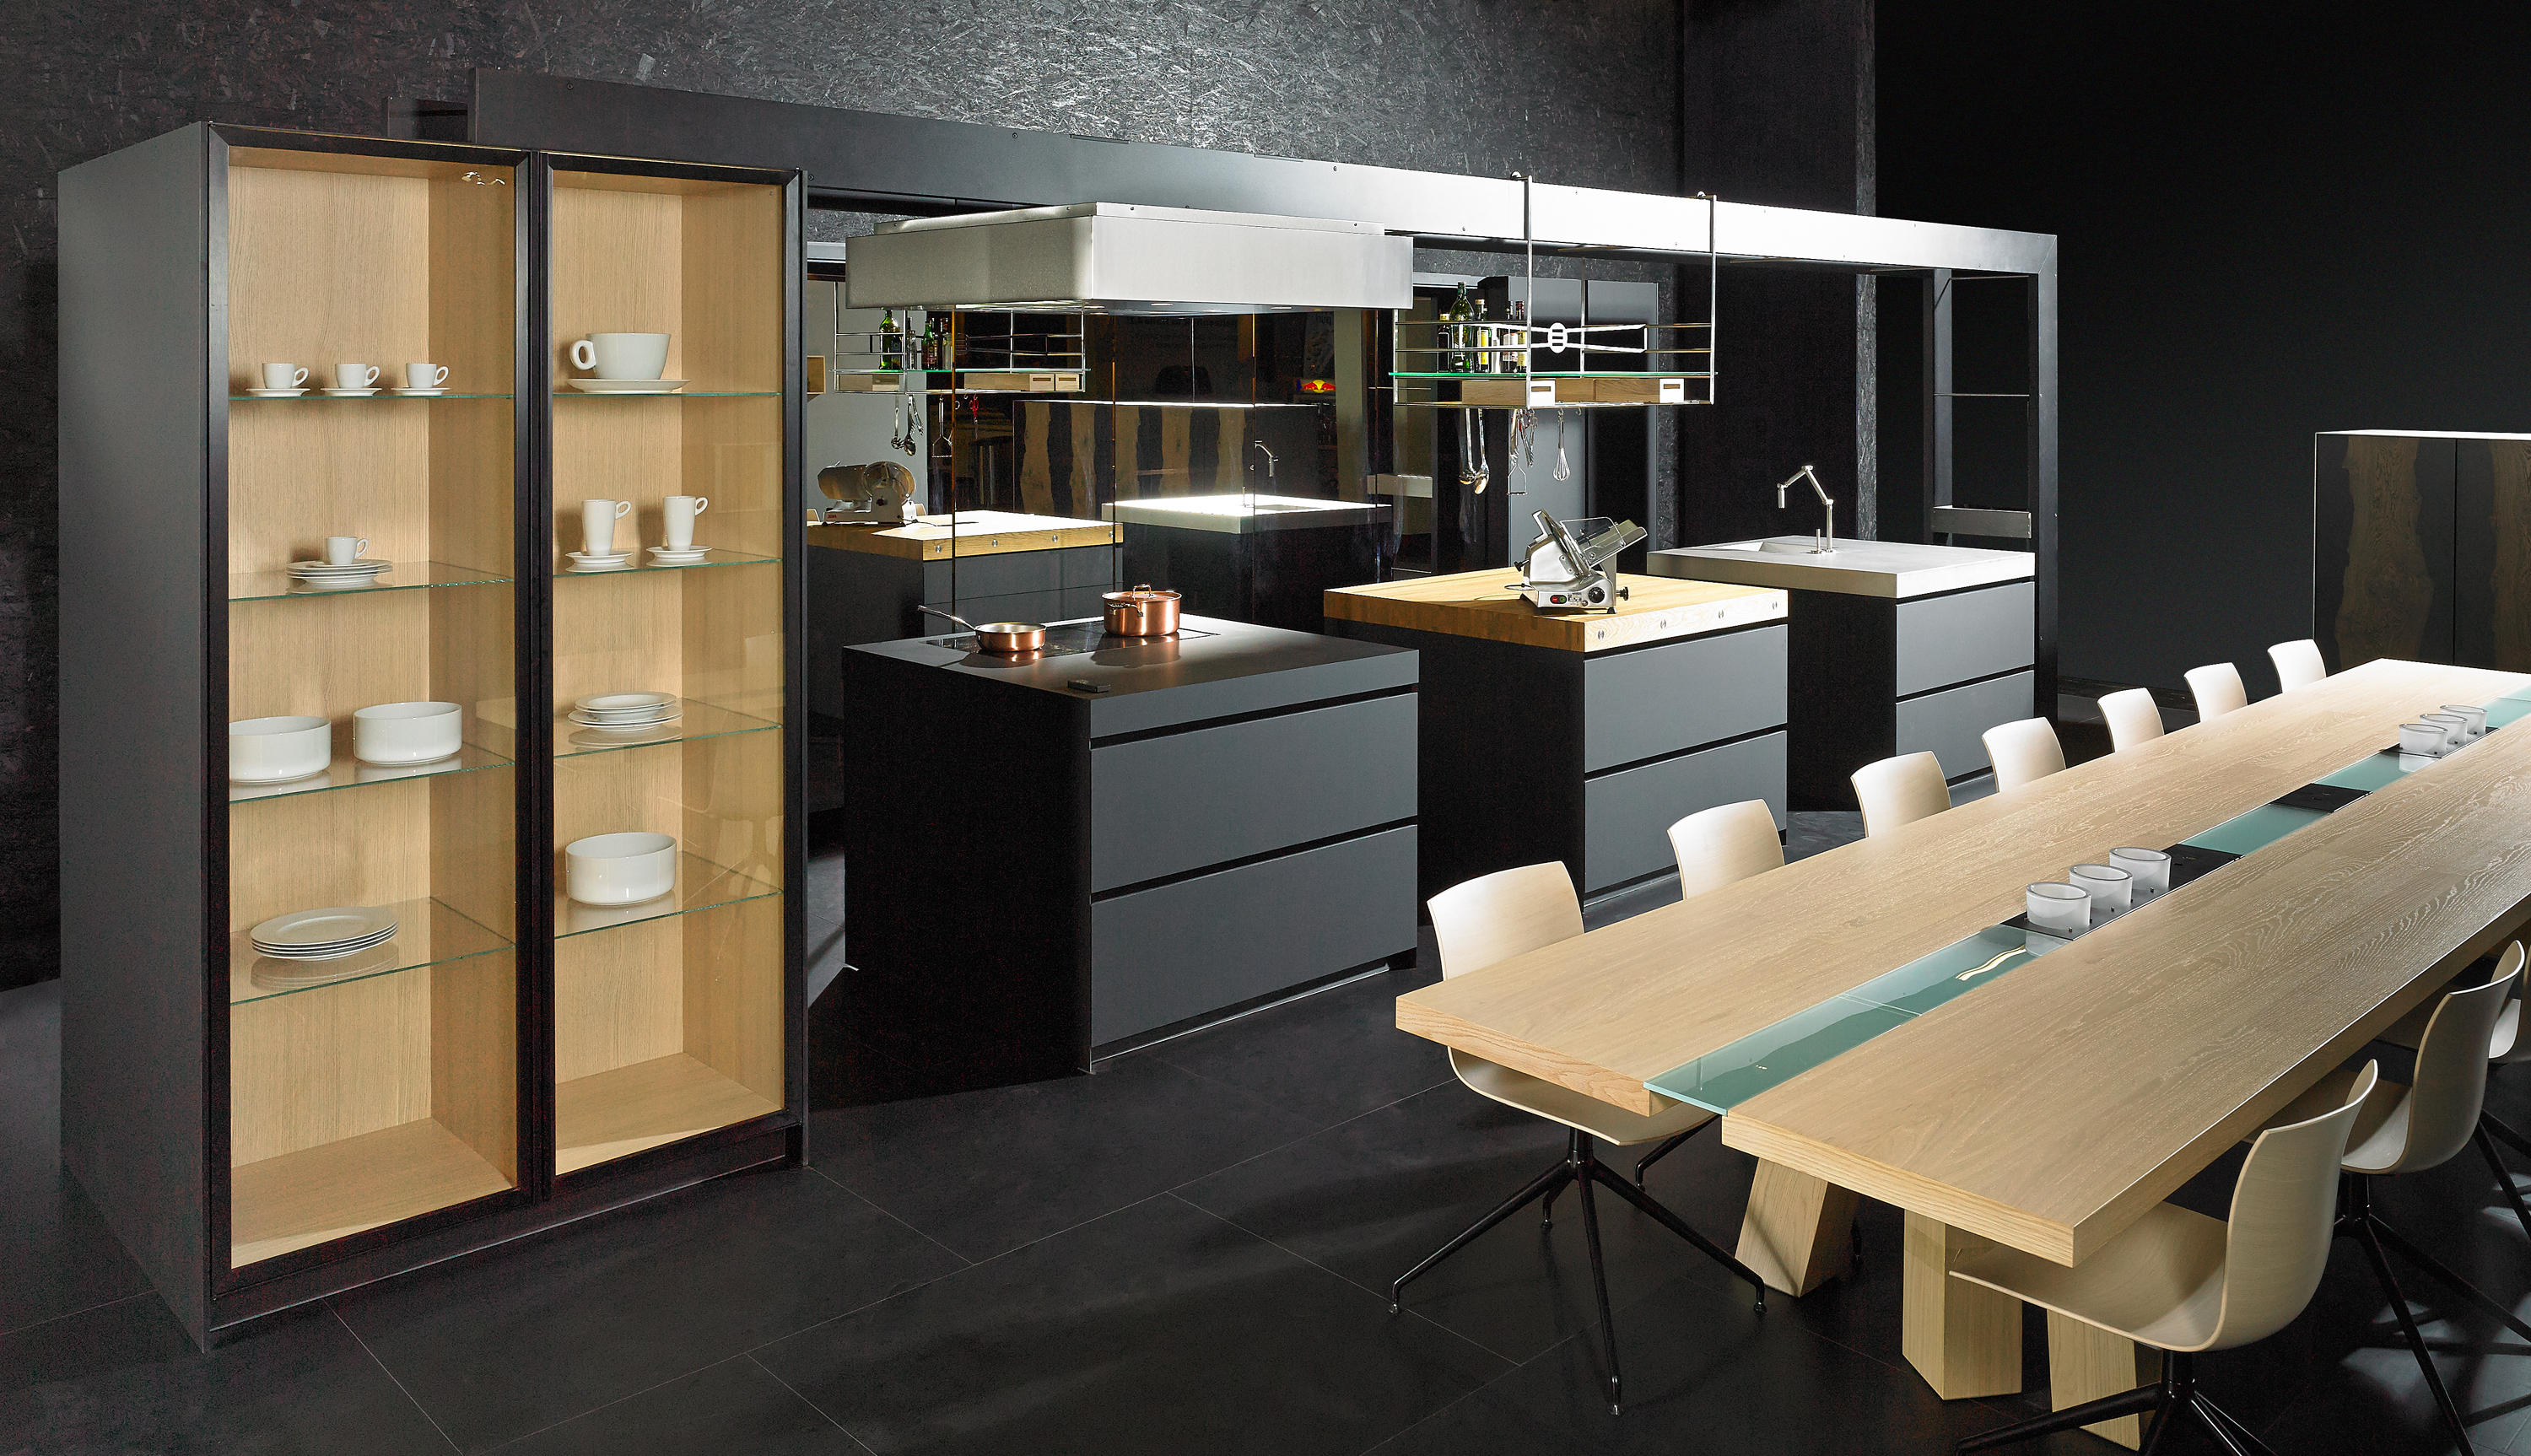 Cuisine Eggersmann Works Fitted Kitchens From Eggersmann Architonic